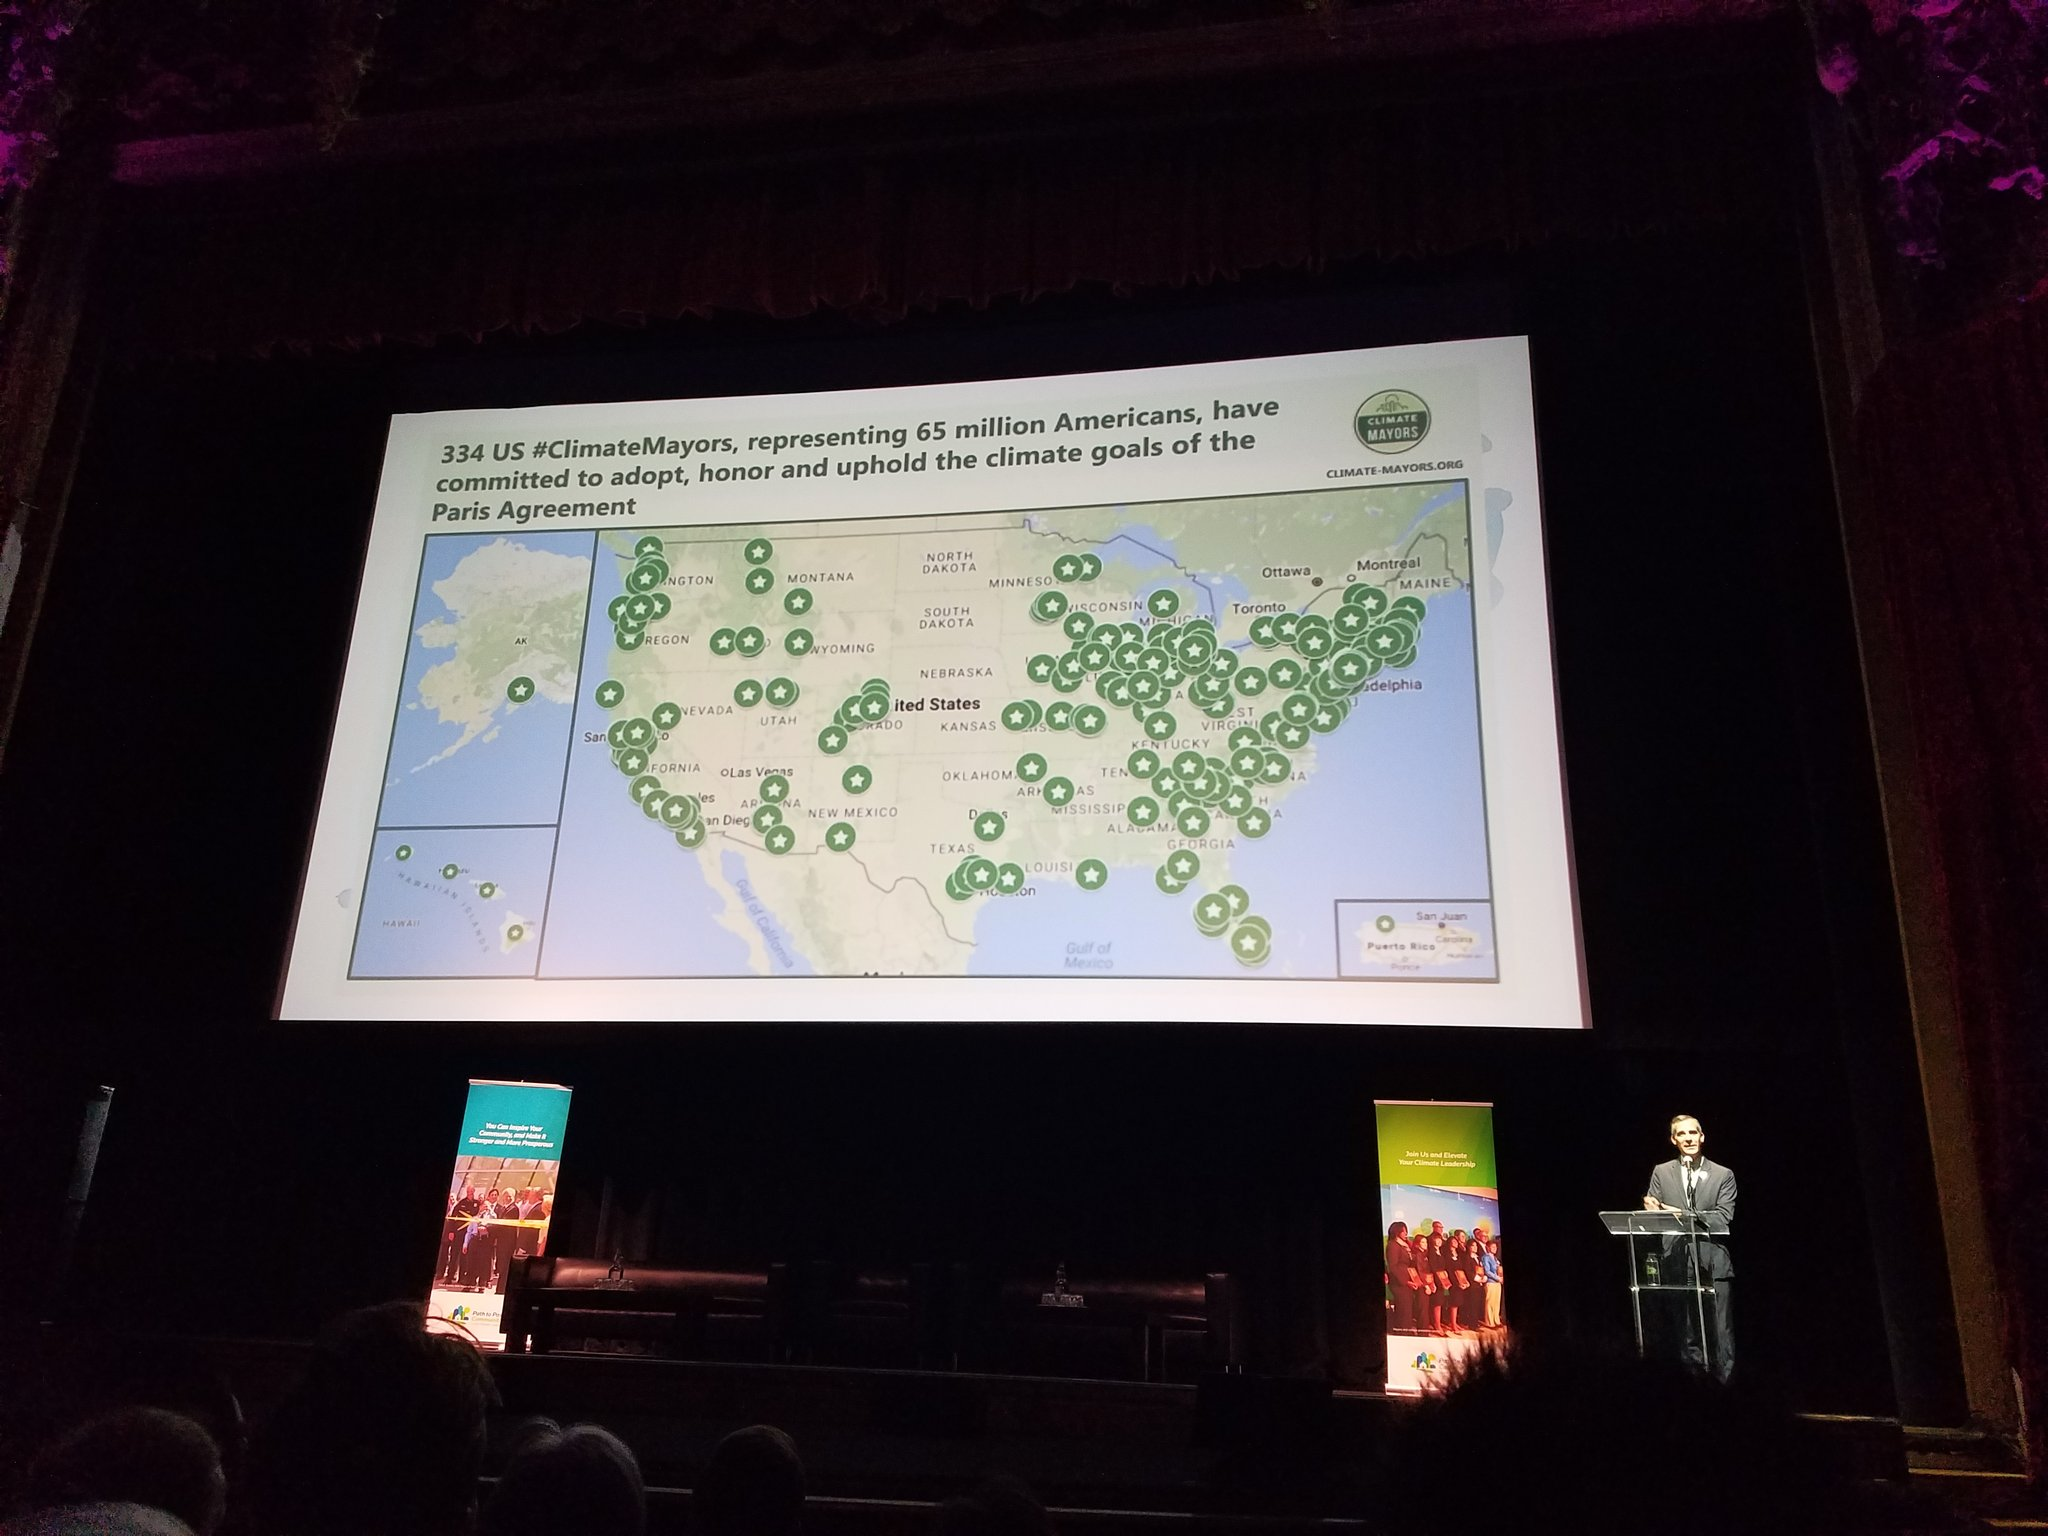 Over 300 cities know that #ClimateChangeIsReal  #climatedayla #laclimateaction https://t.co/AdGxE31KwG